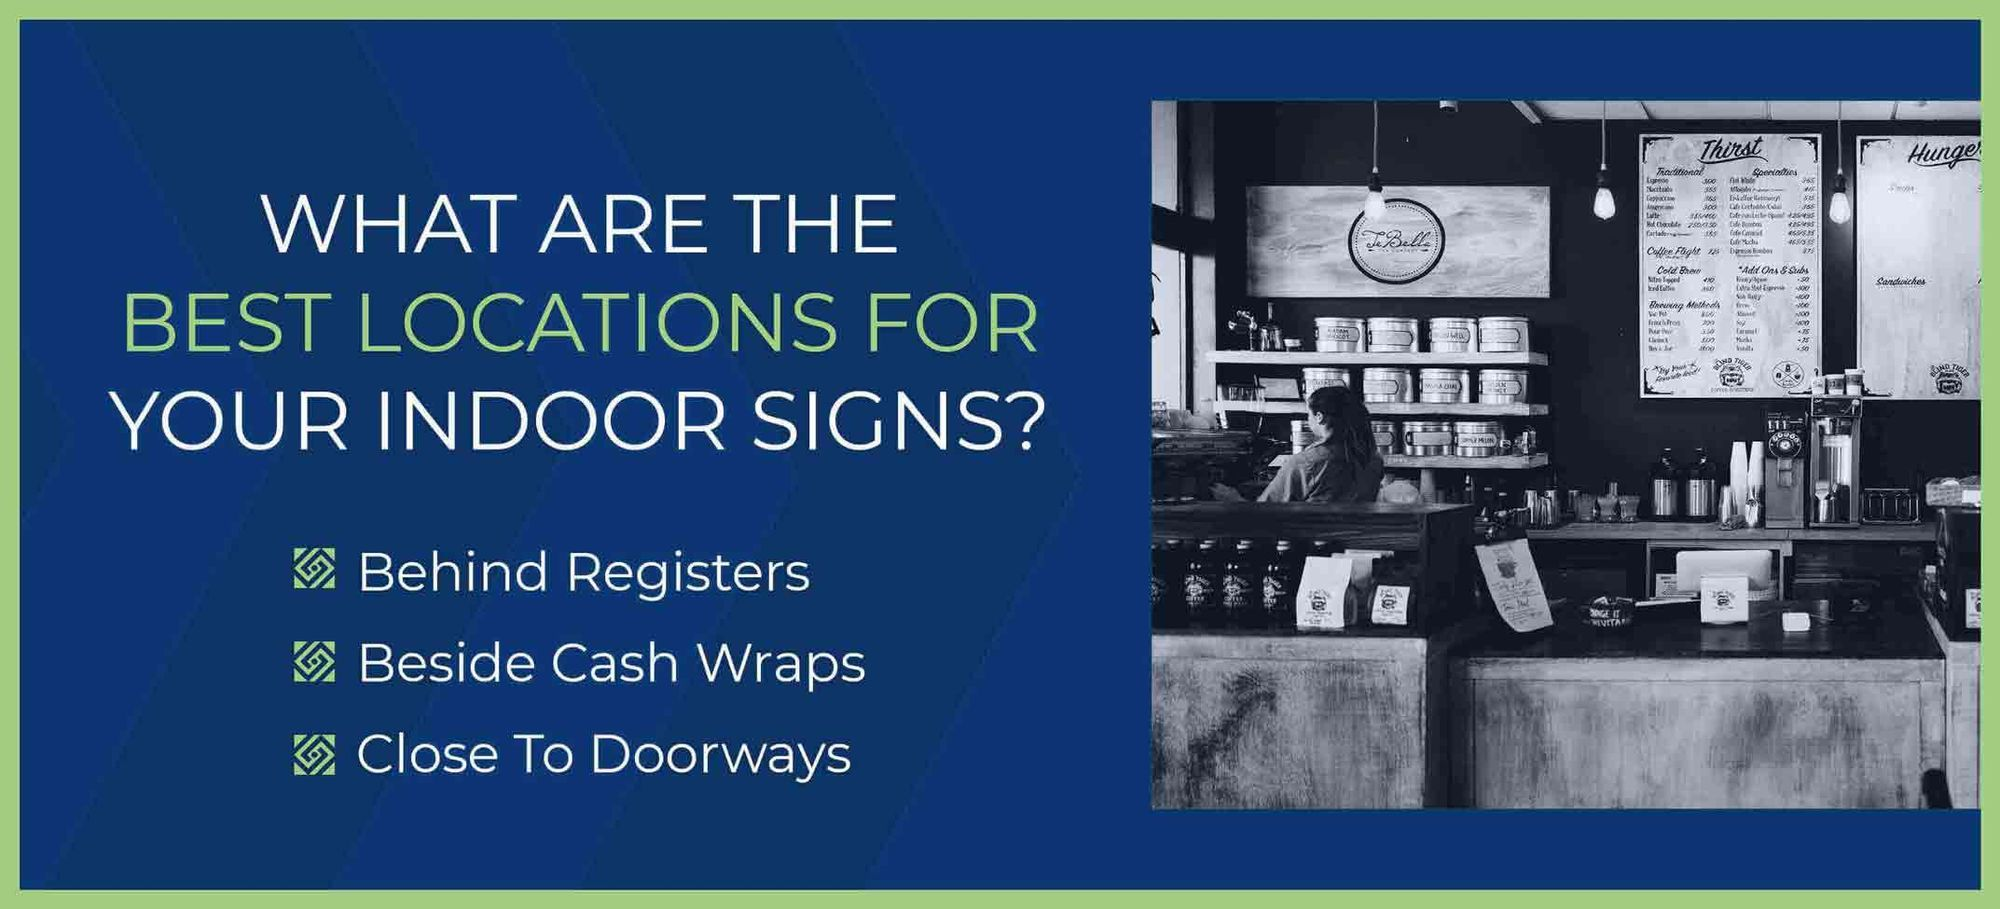 Best locations for indoor signs